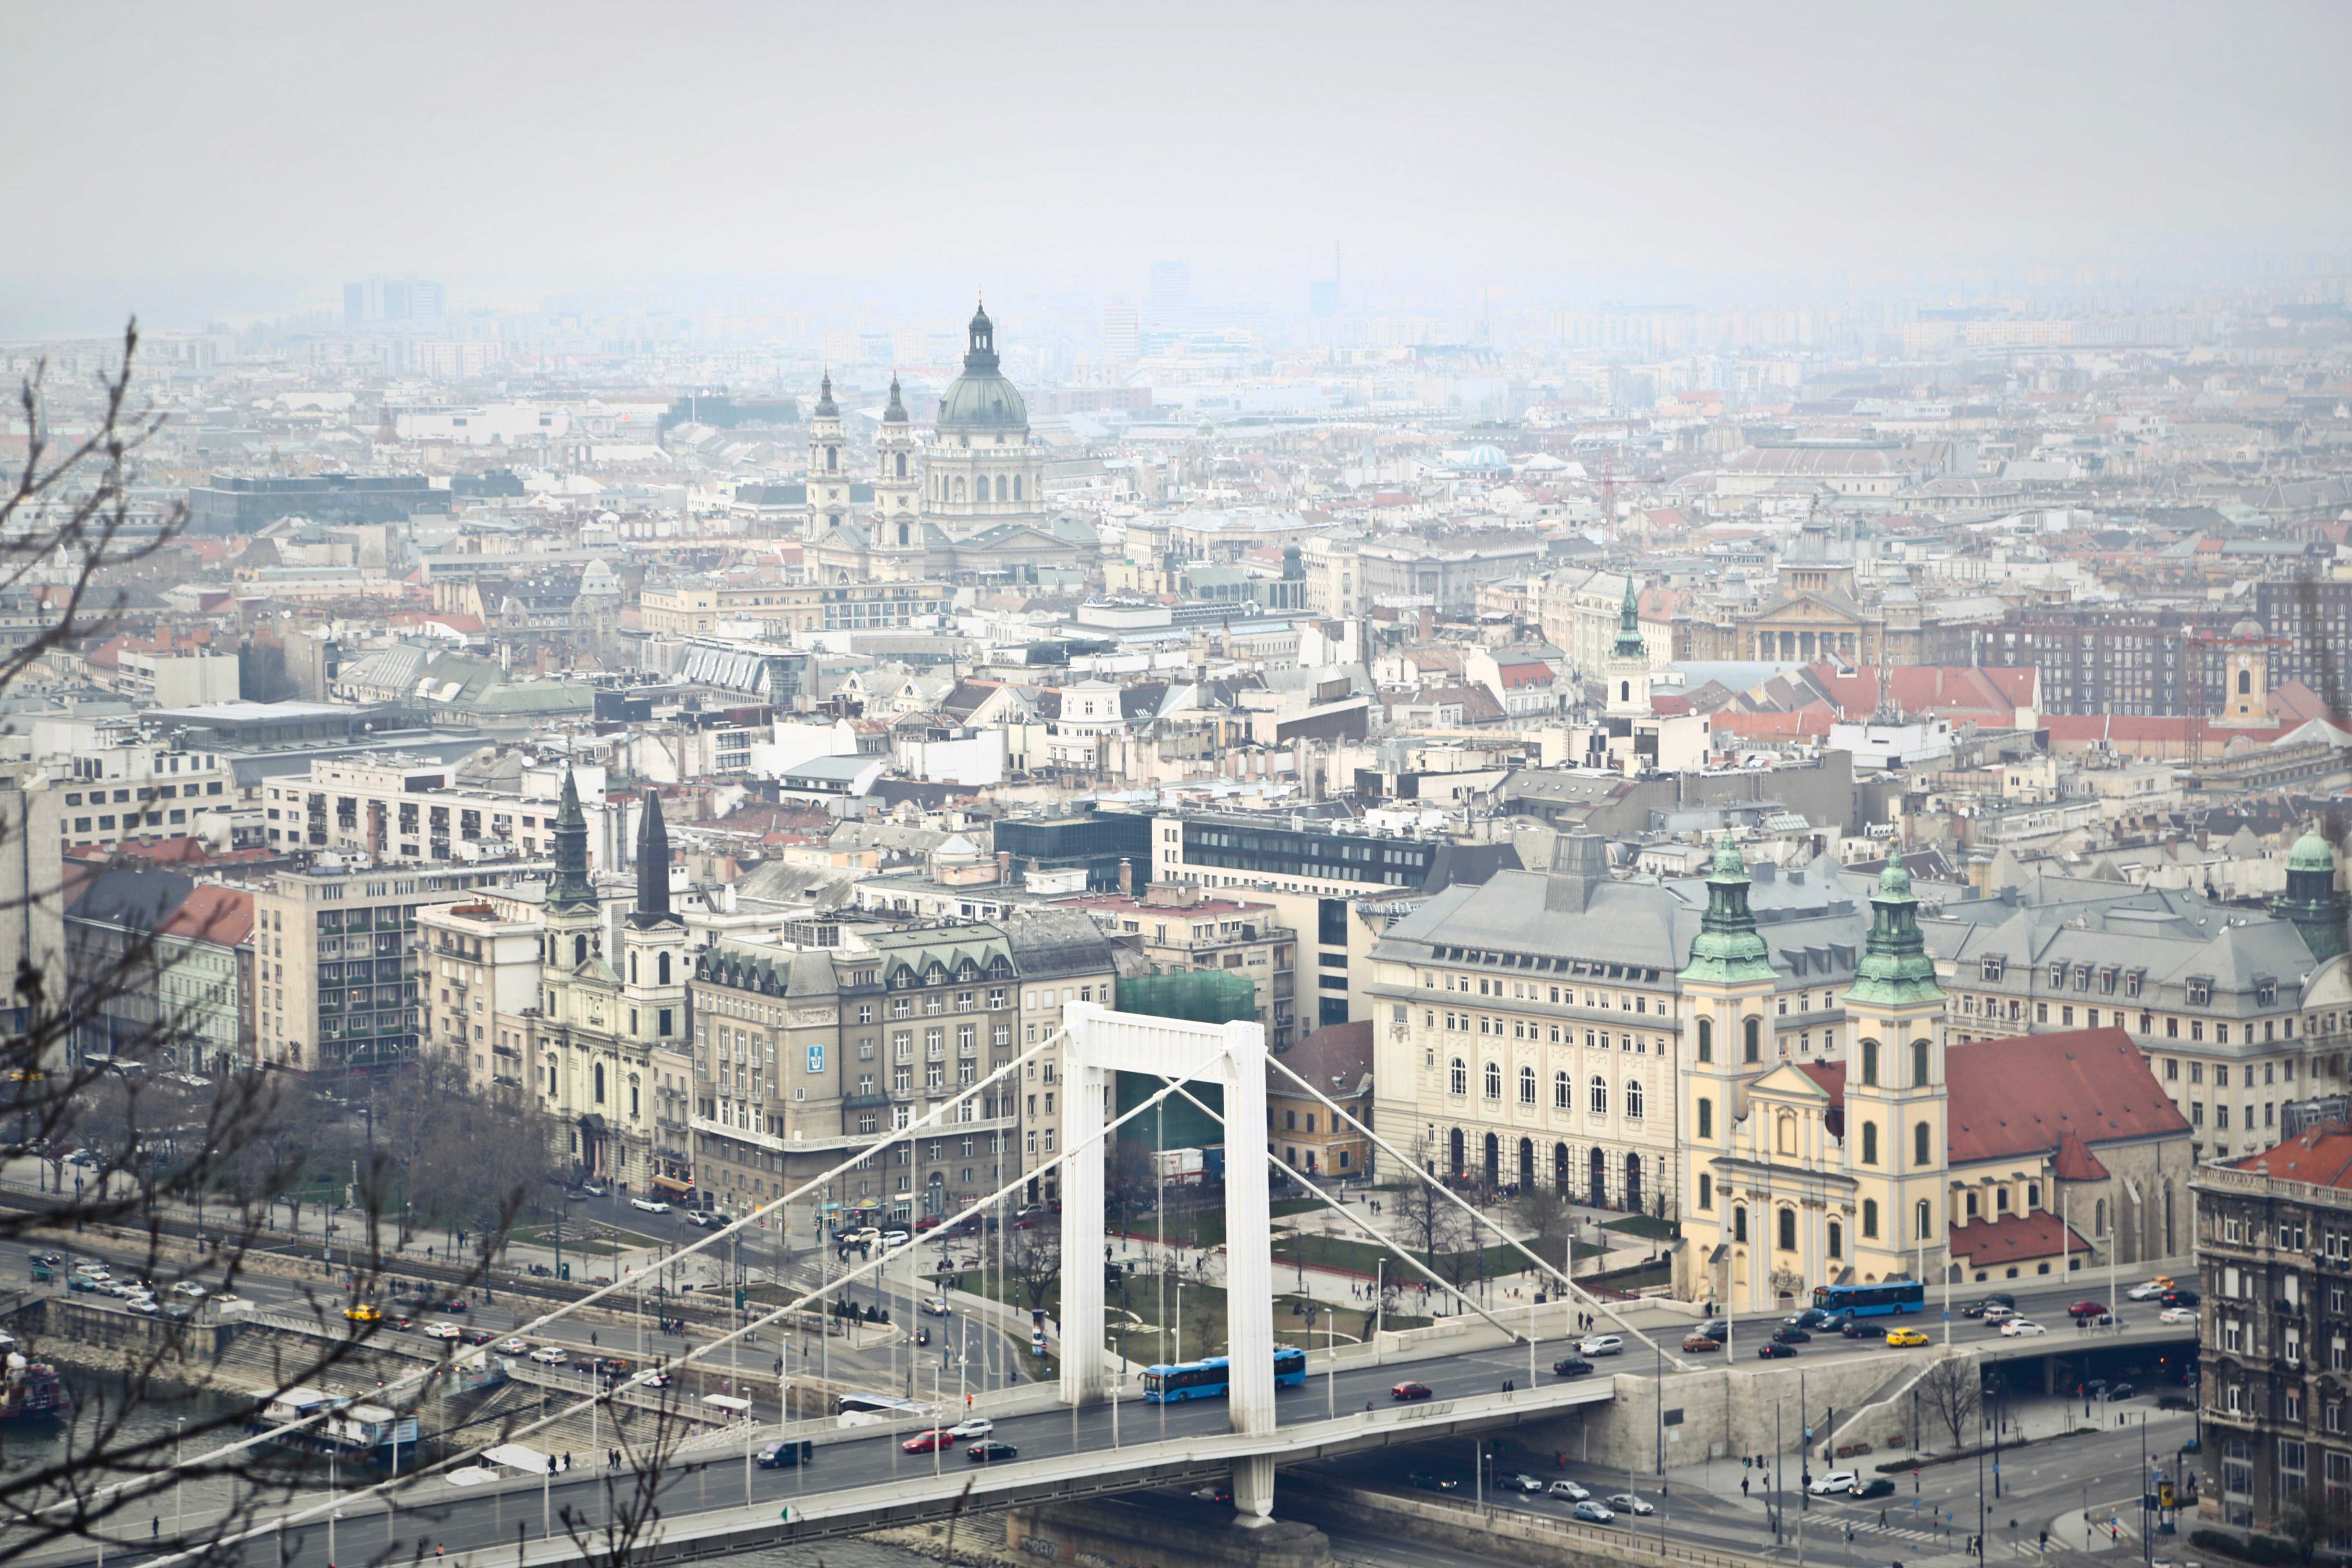 Aerial photography of the city